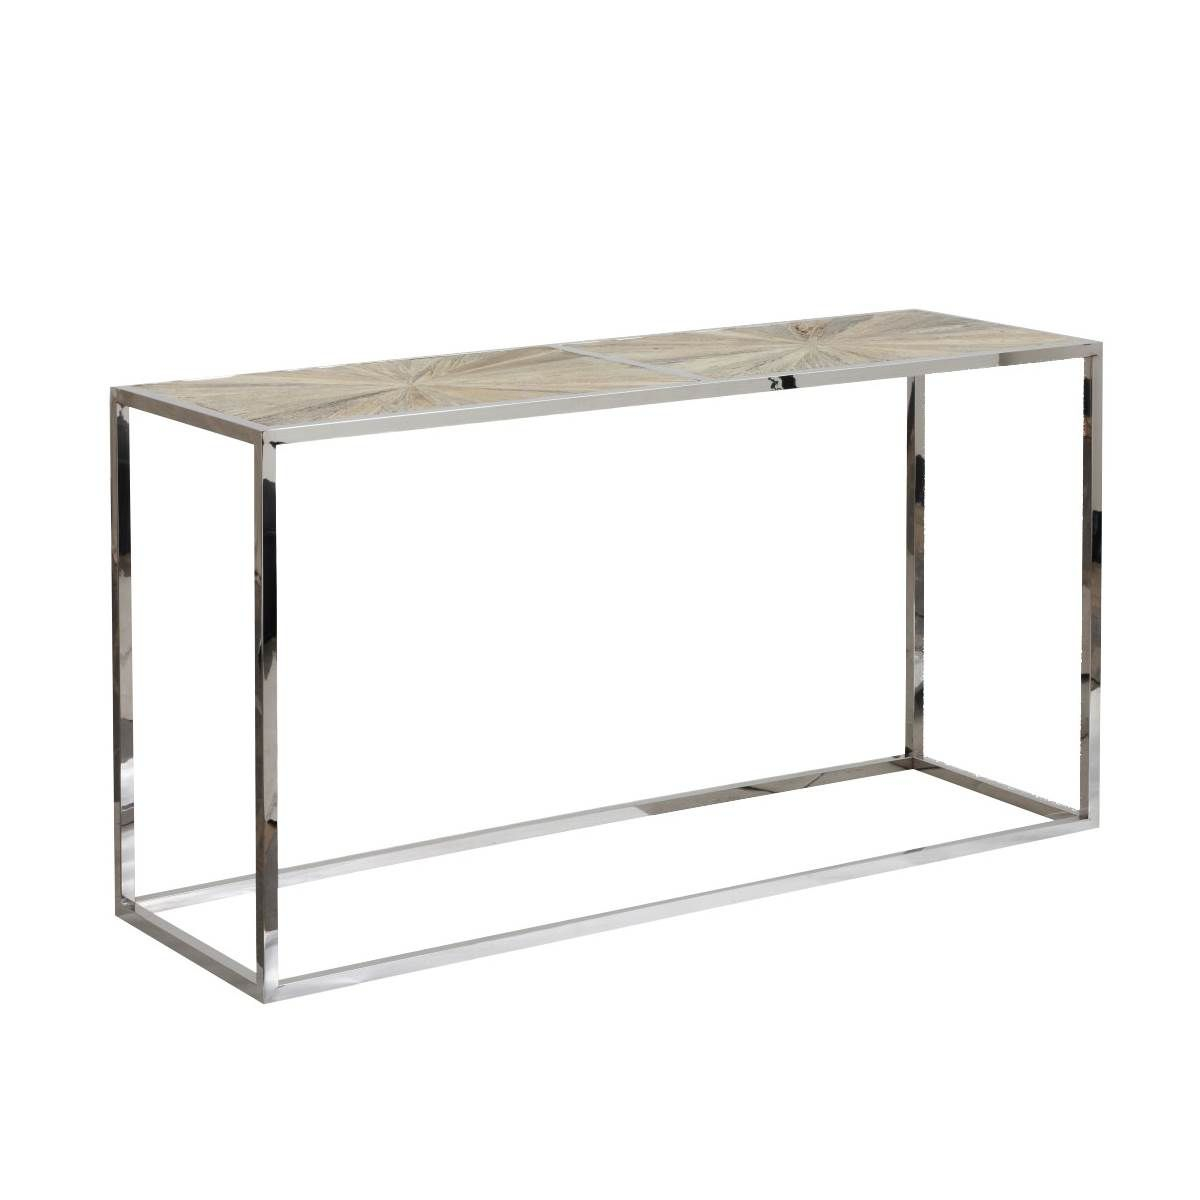 Parquet Console Table | Marshall | Pinterest With Parsons Clear Glass Top & Dark Steel Base 48x16 Console Tables (View 21 of 30)